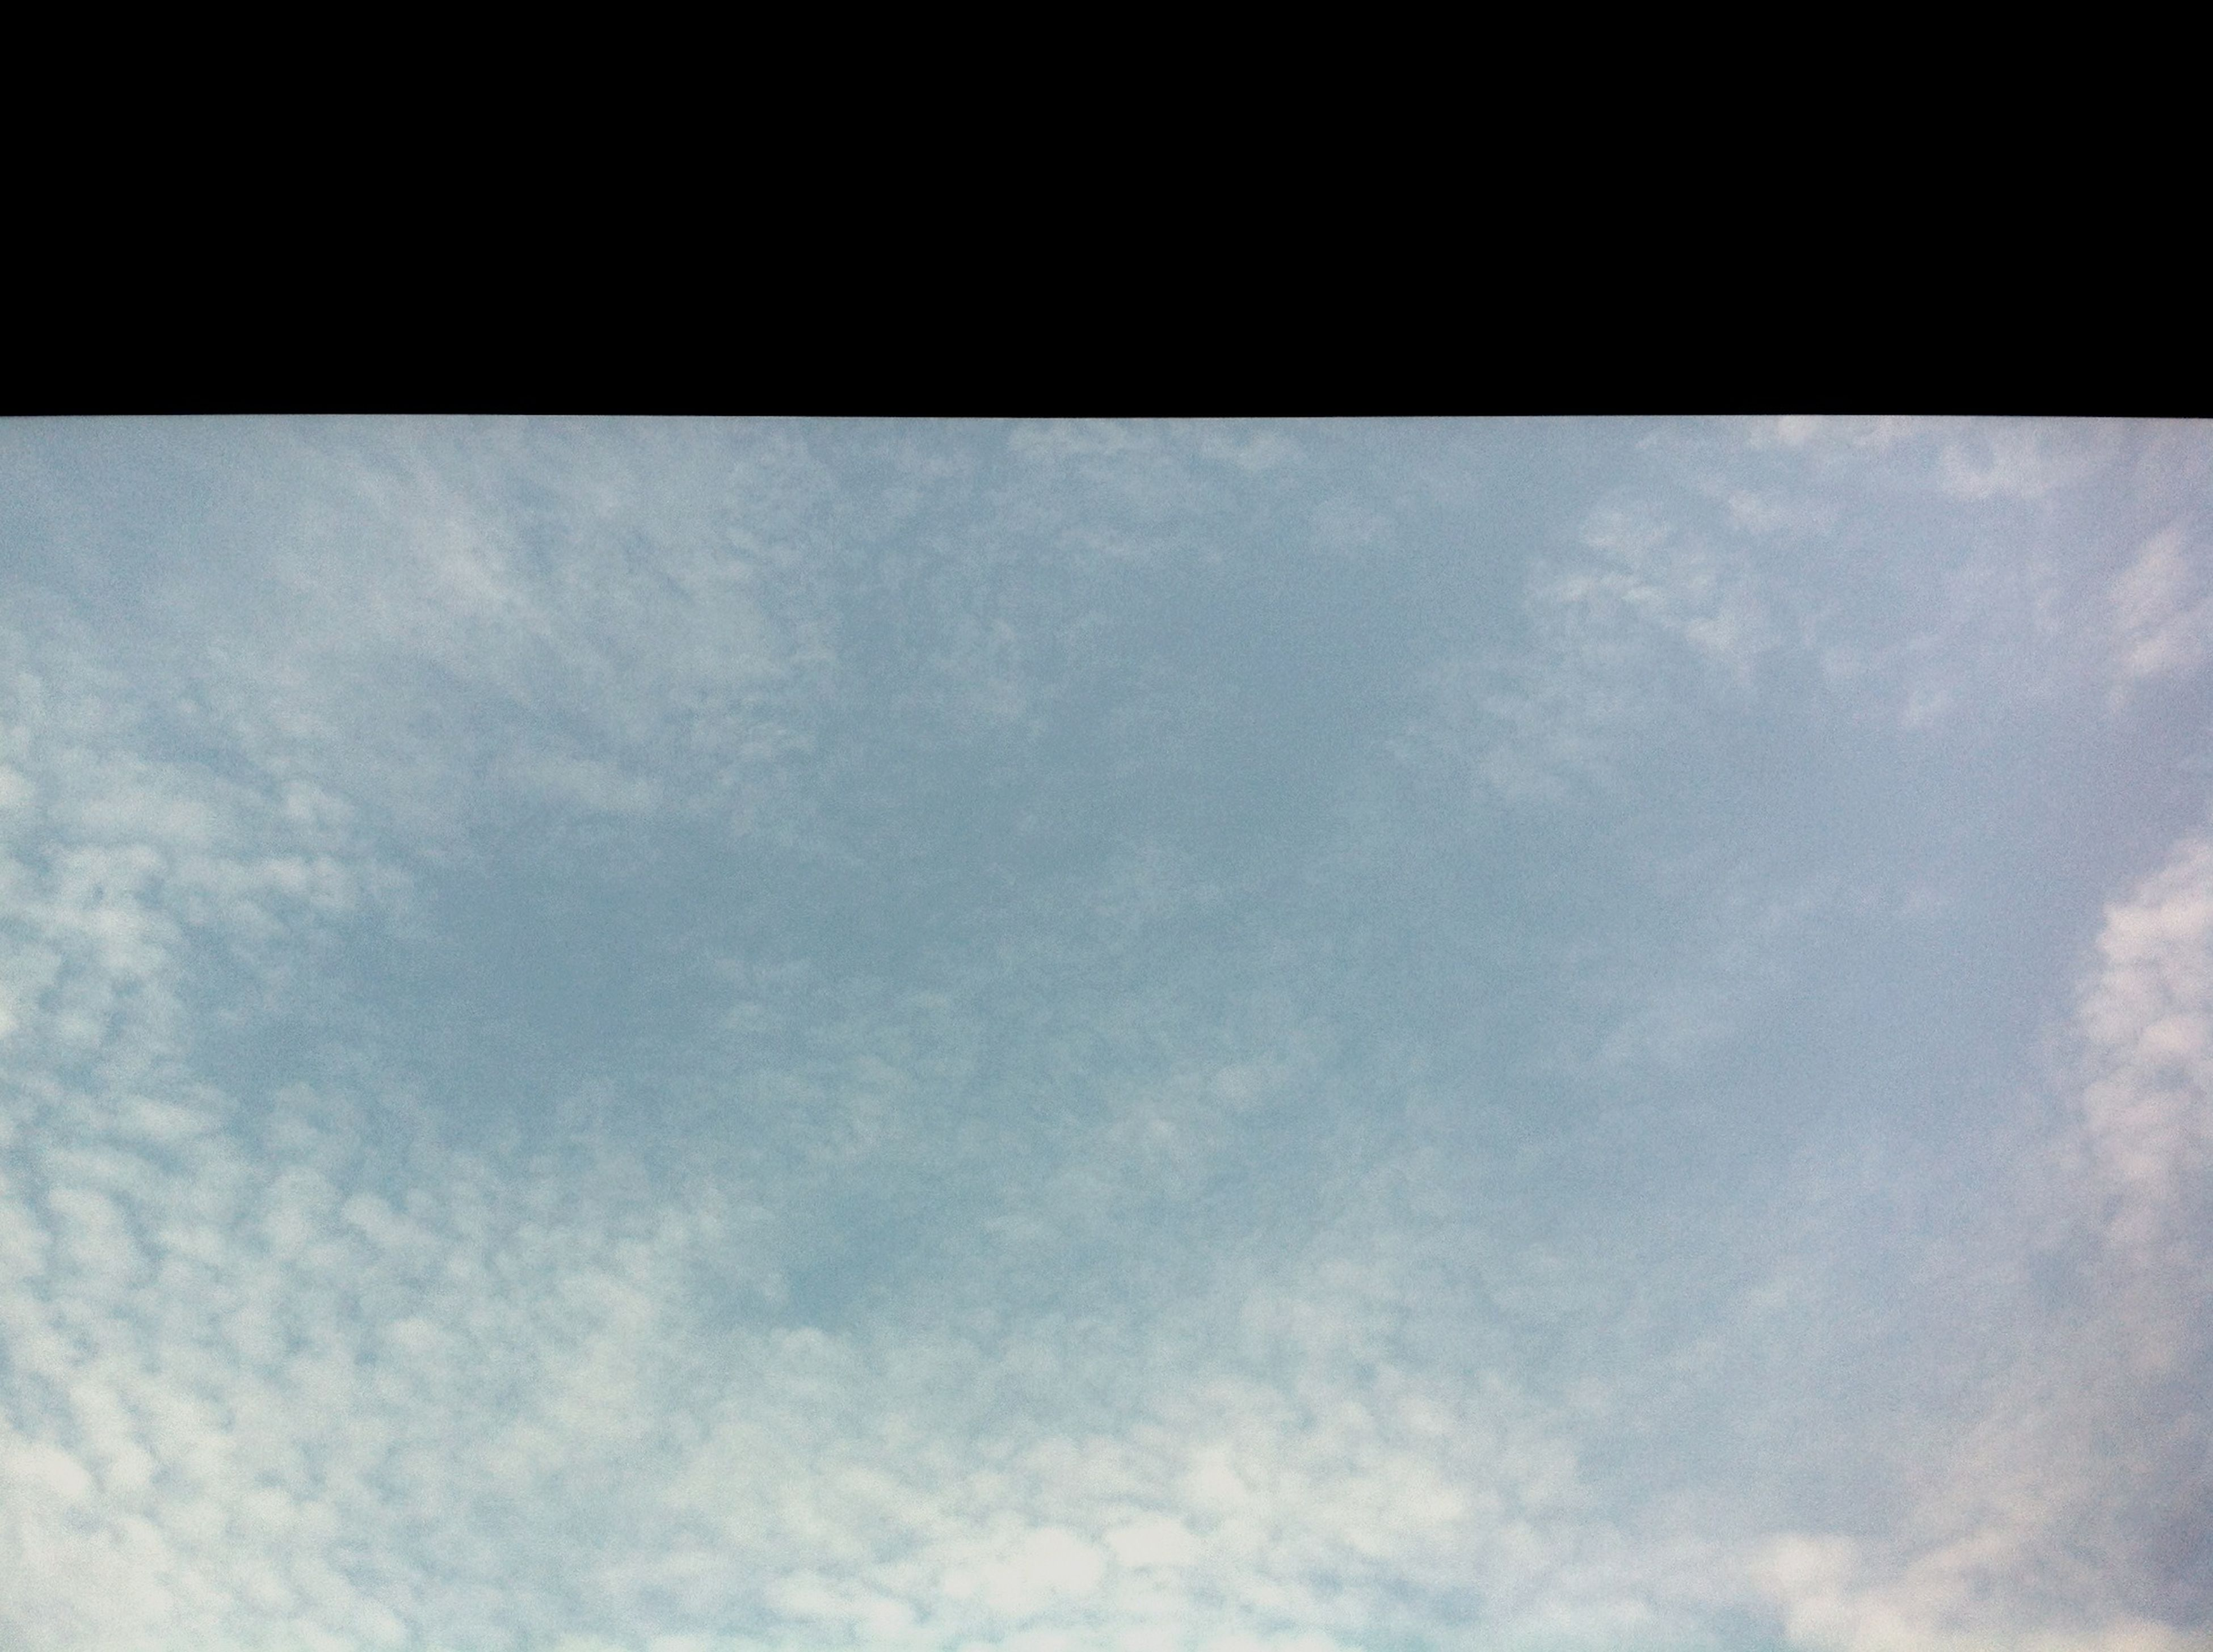 low angle view, sky, transfer print, cloud - sky, beauty in nature, tranquility, nature, auto post production filter, backgrounds, scenics, tranquil scene, cloudy, cloud, full frame, no people, sky only, day, outdoors, copy space, white color